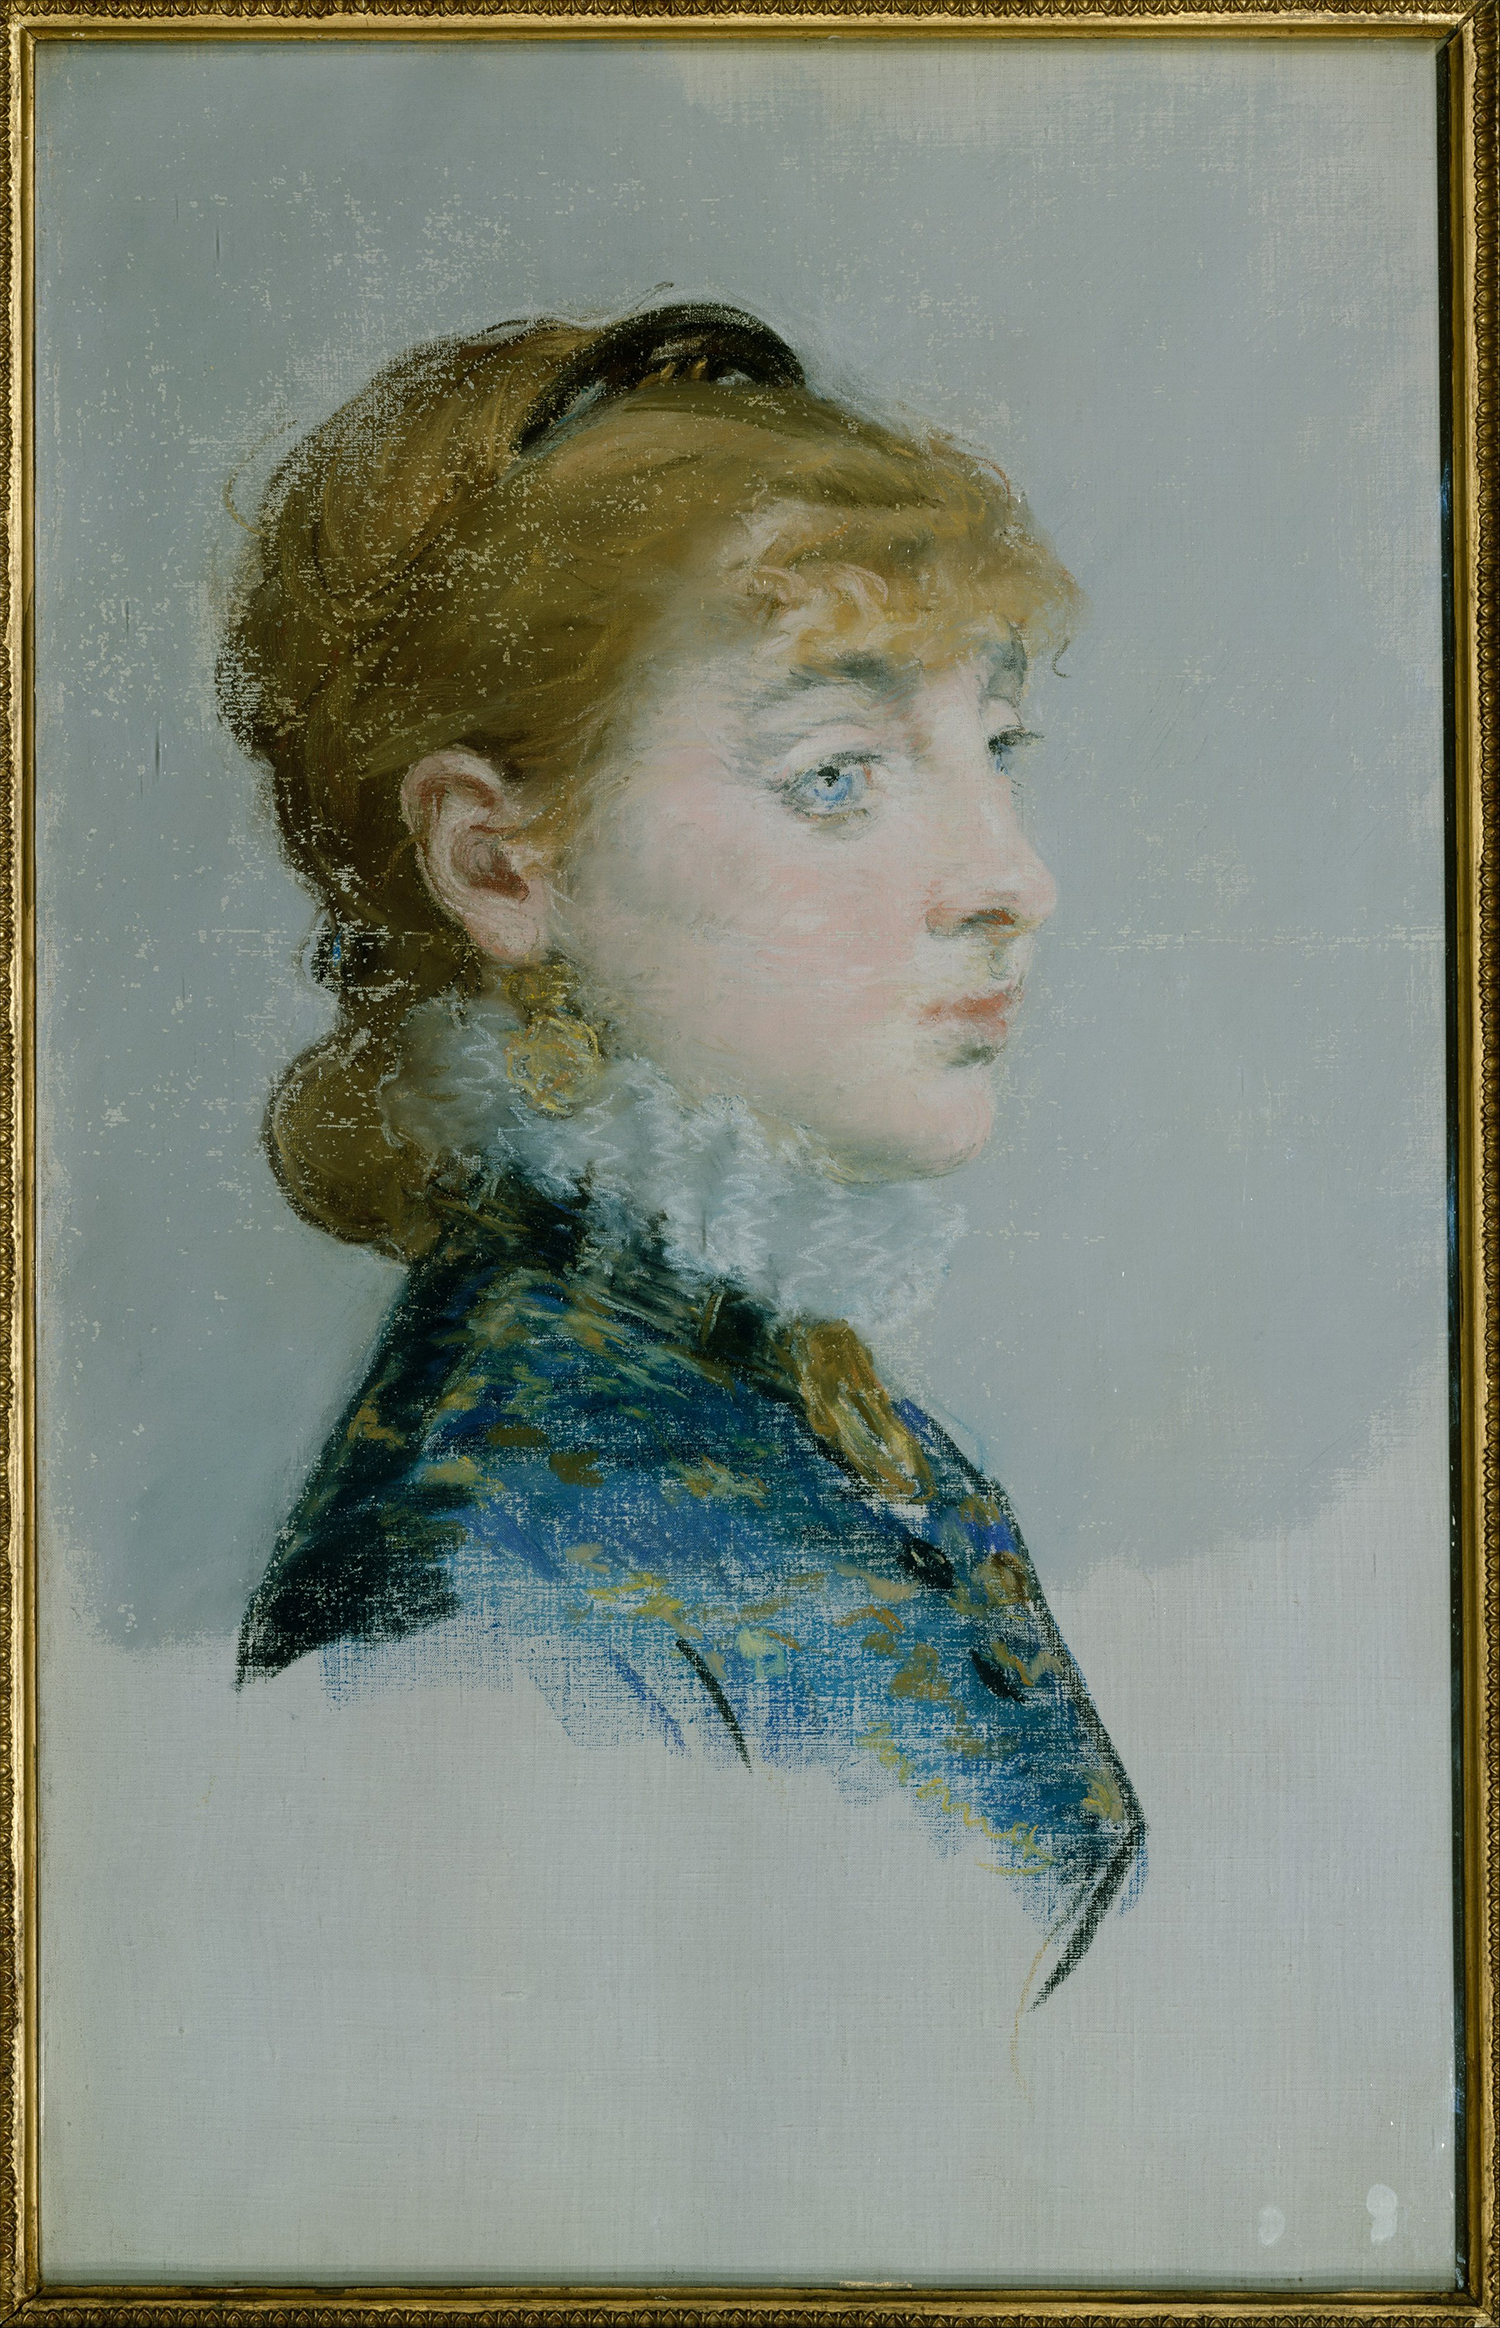 valtesse-manet-met-art.jpg